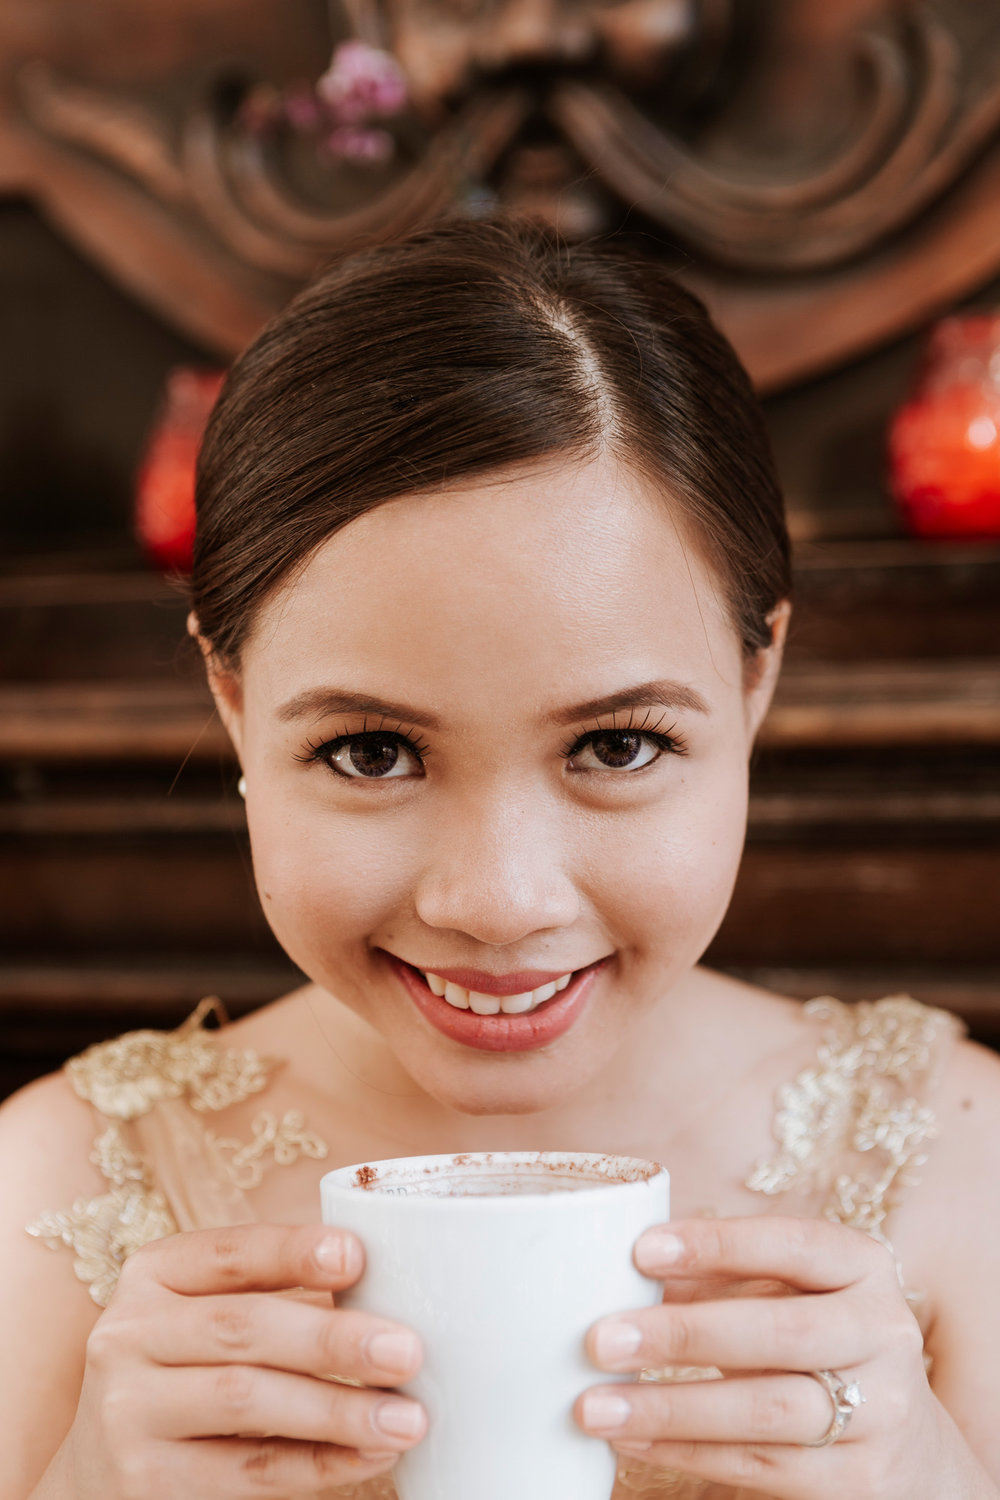 Pre-wedding bridal portrait with coffee at cafe captured by Paris Photographer Federico Guendel